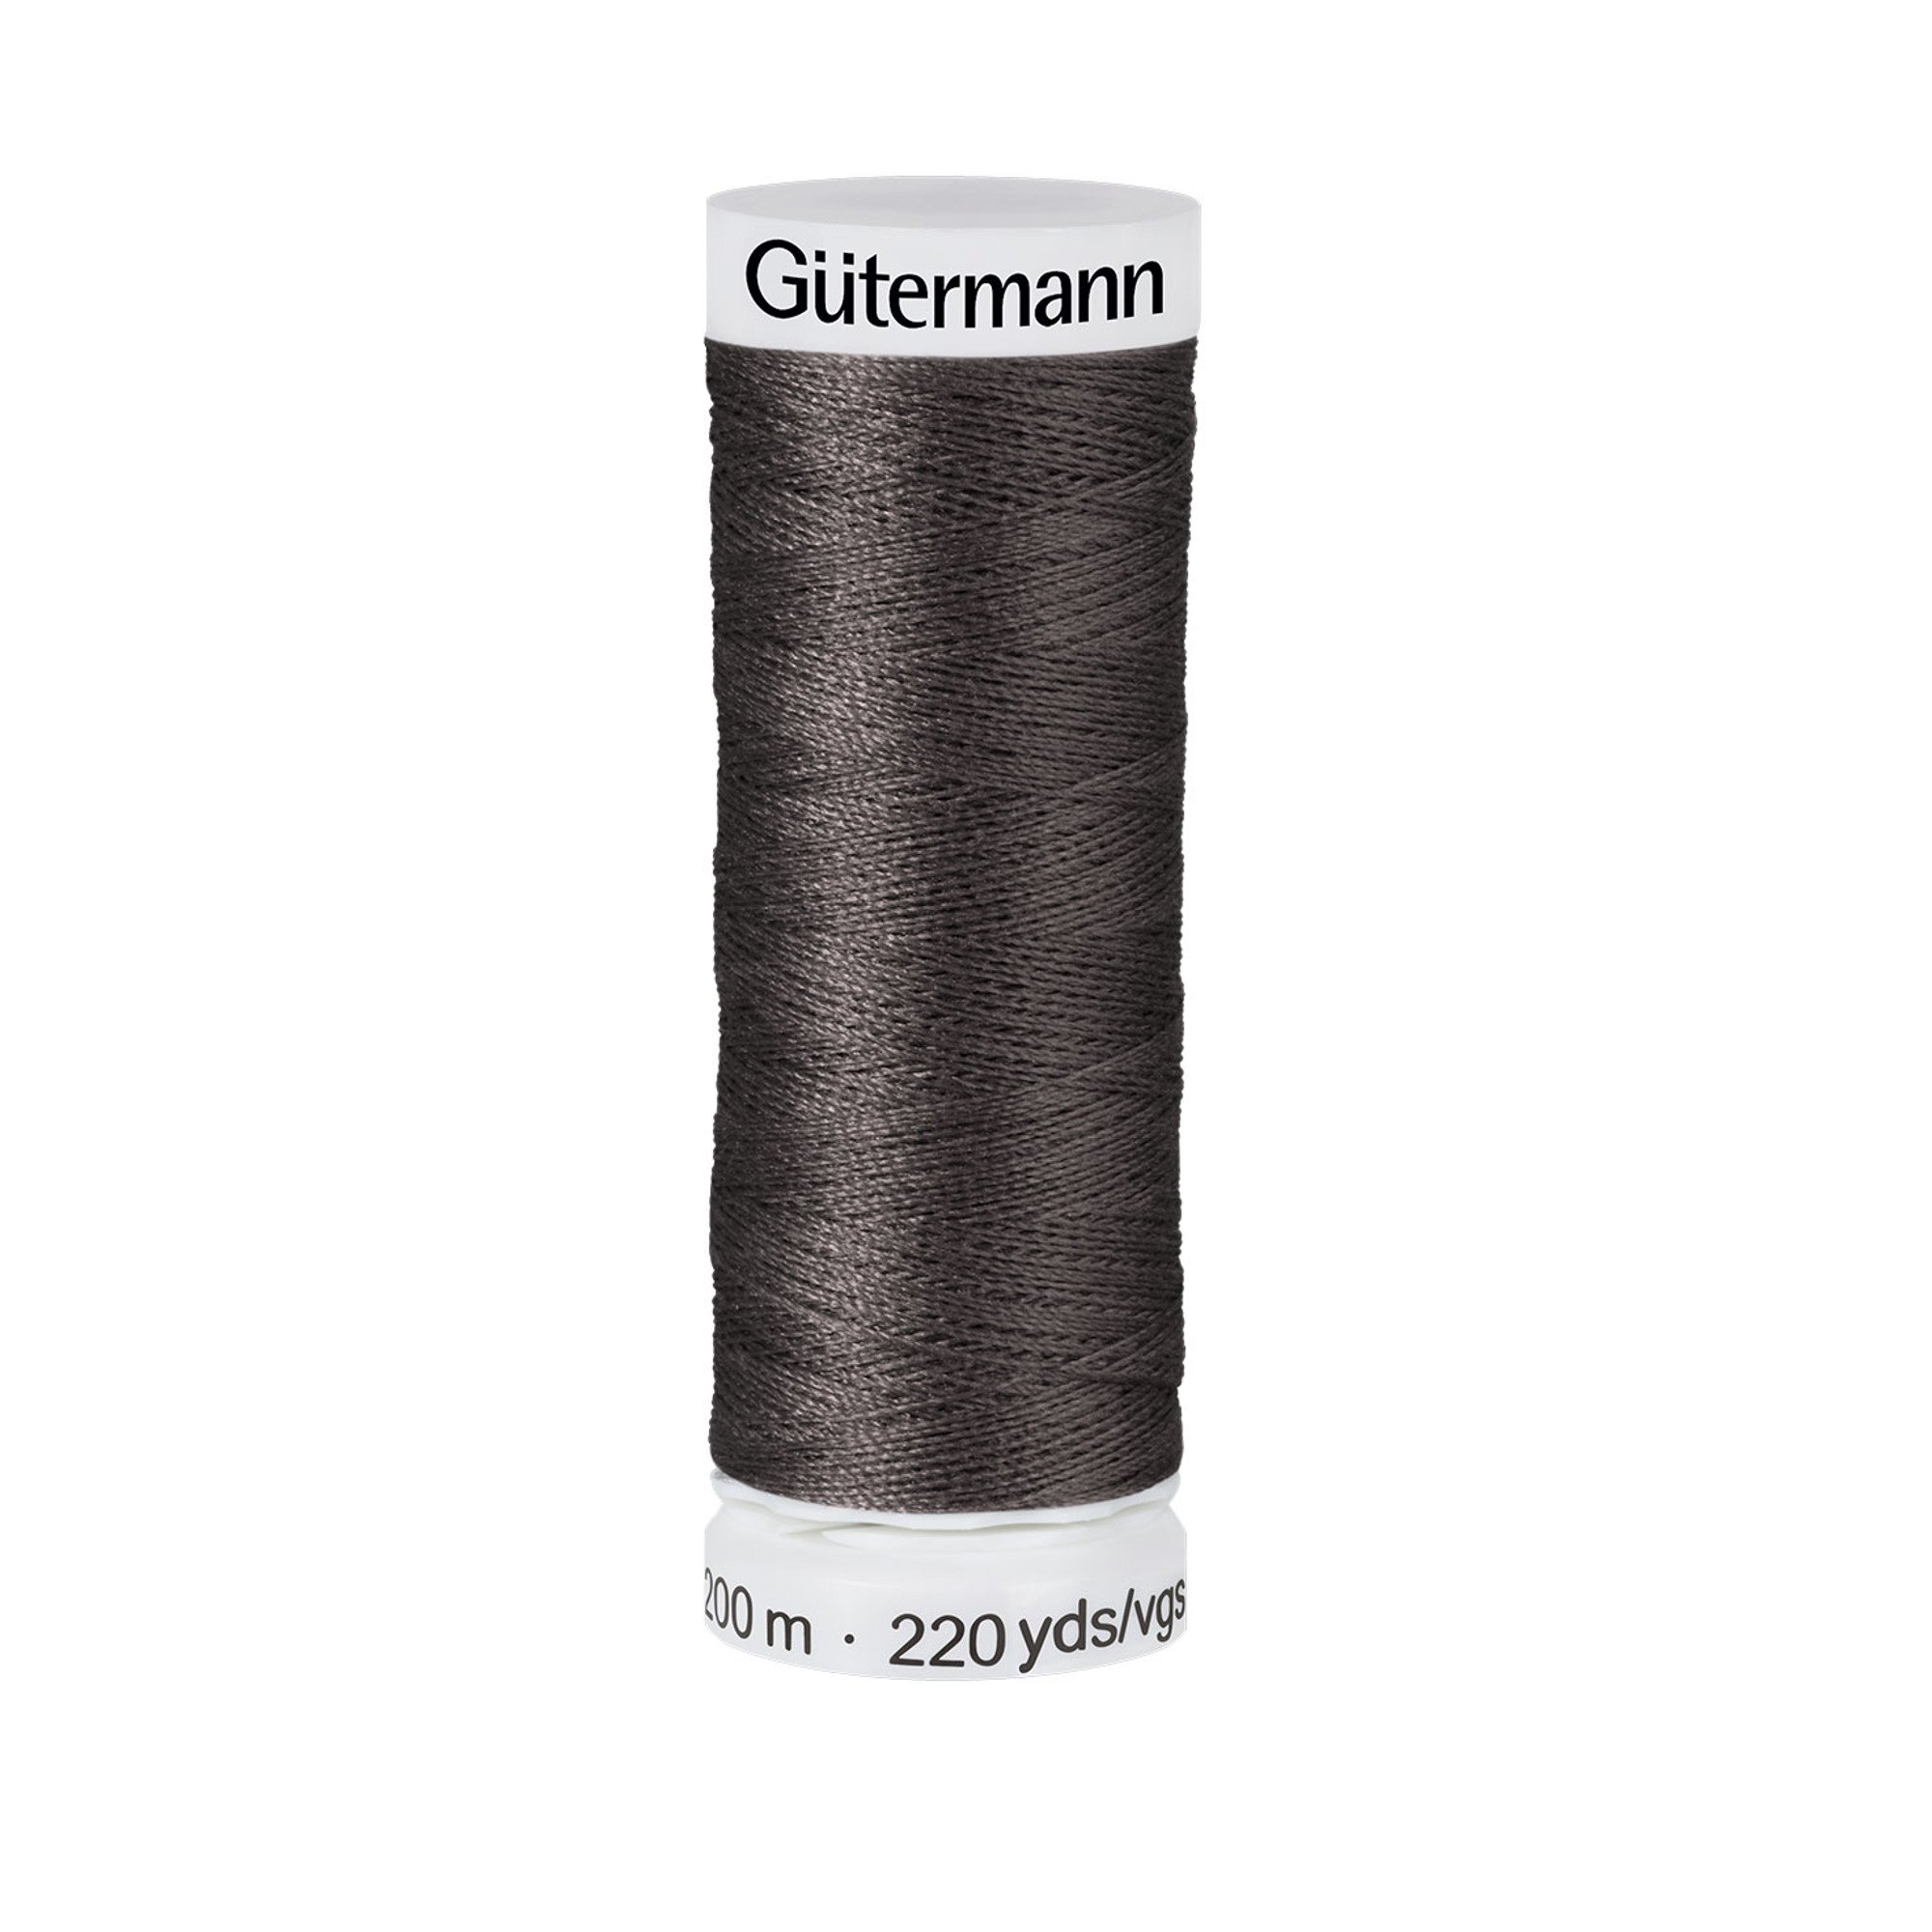 Gütermann Sew-all thread (542)